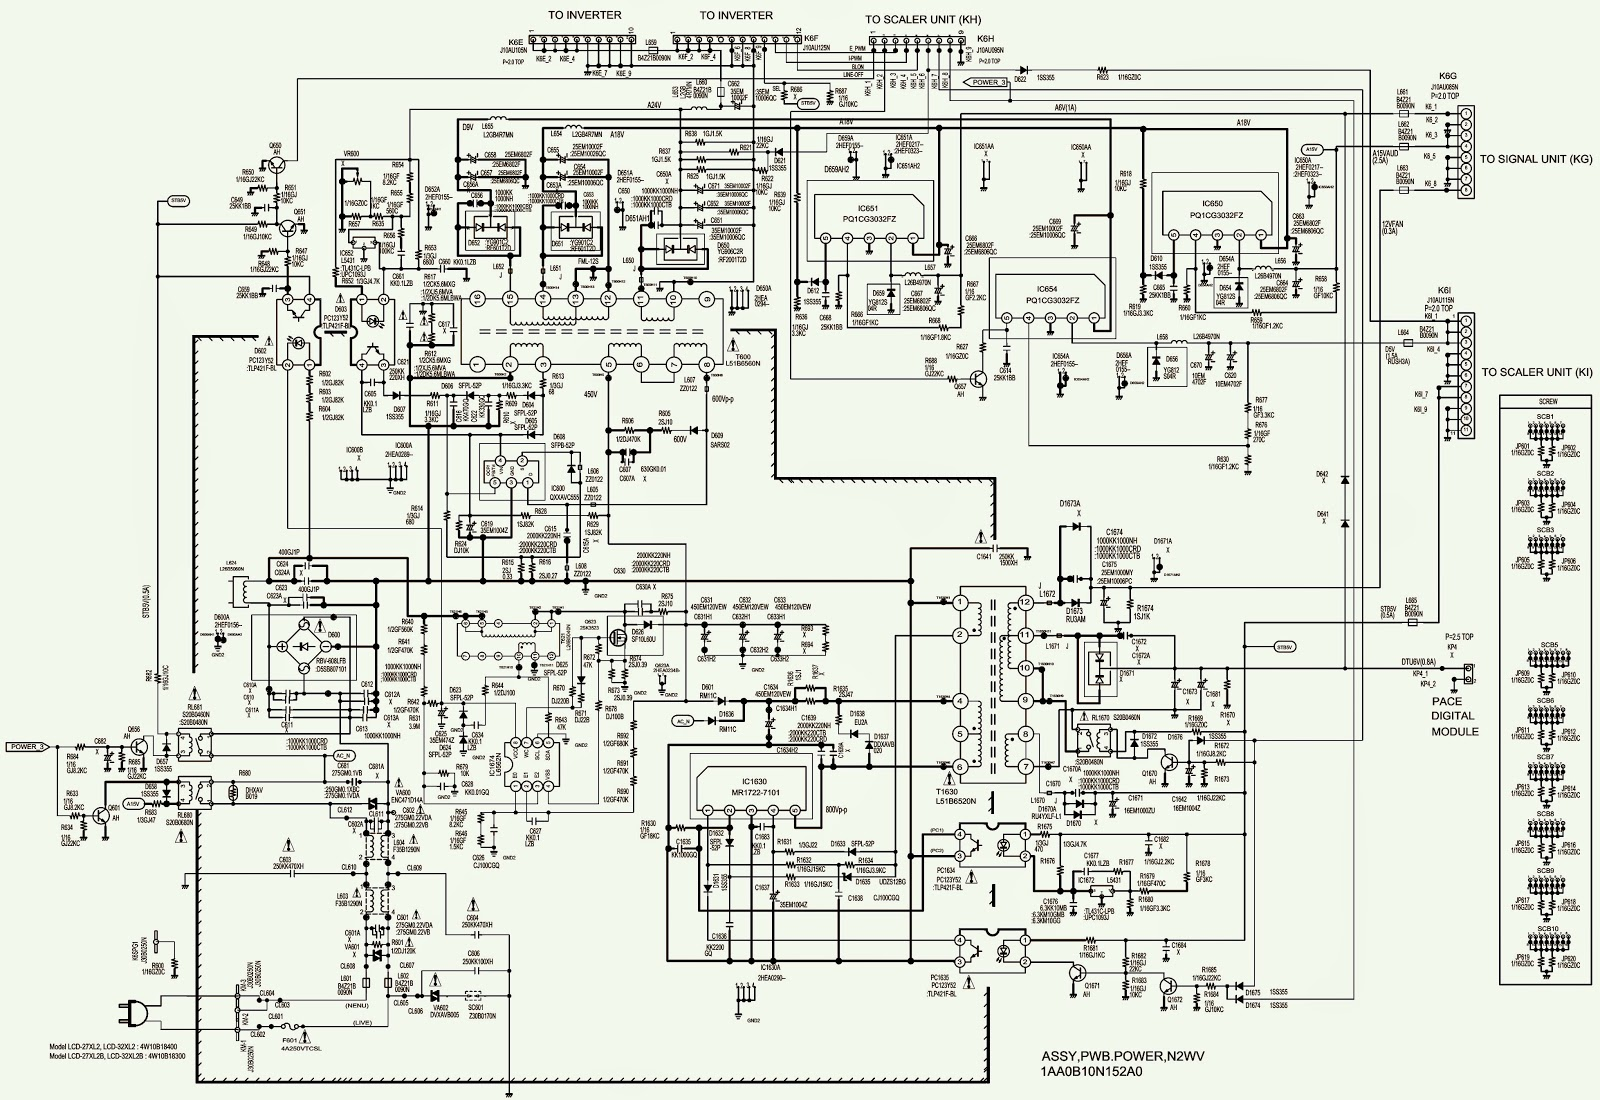 Tz 0562  Tv Sanyo Power Supply Smps Schematic Circuit